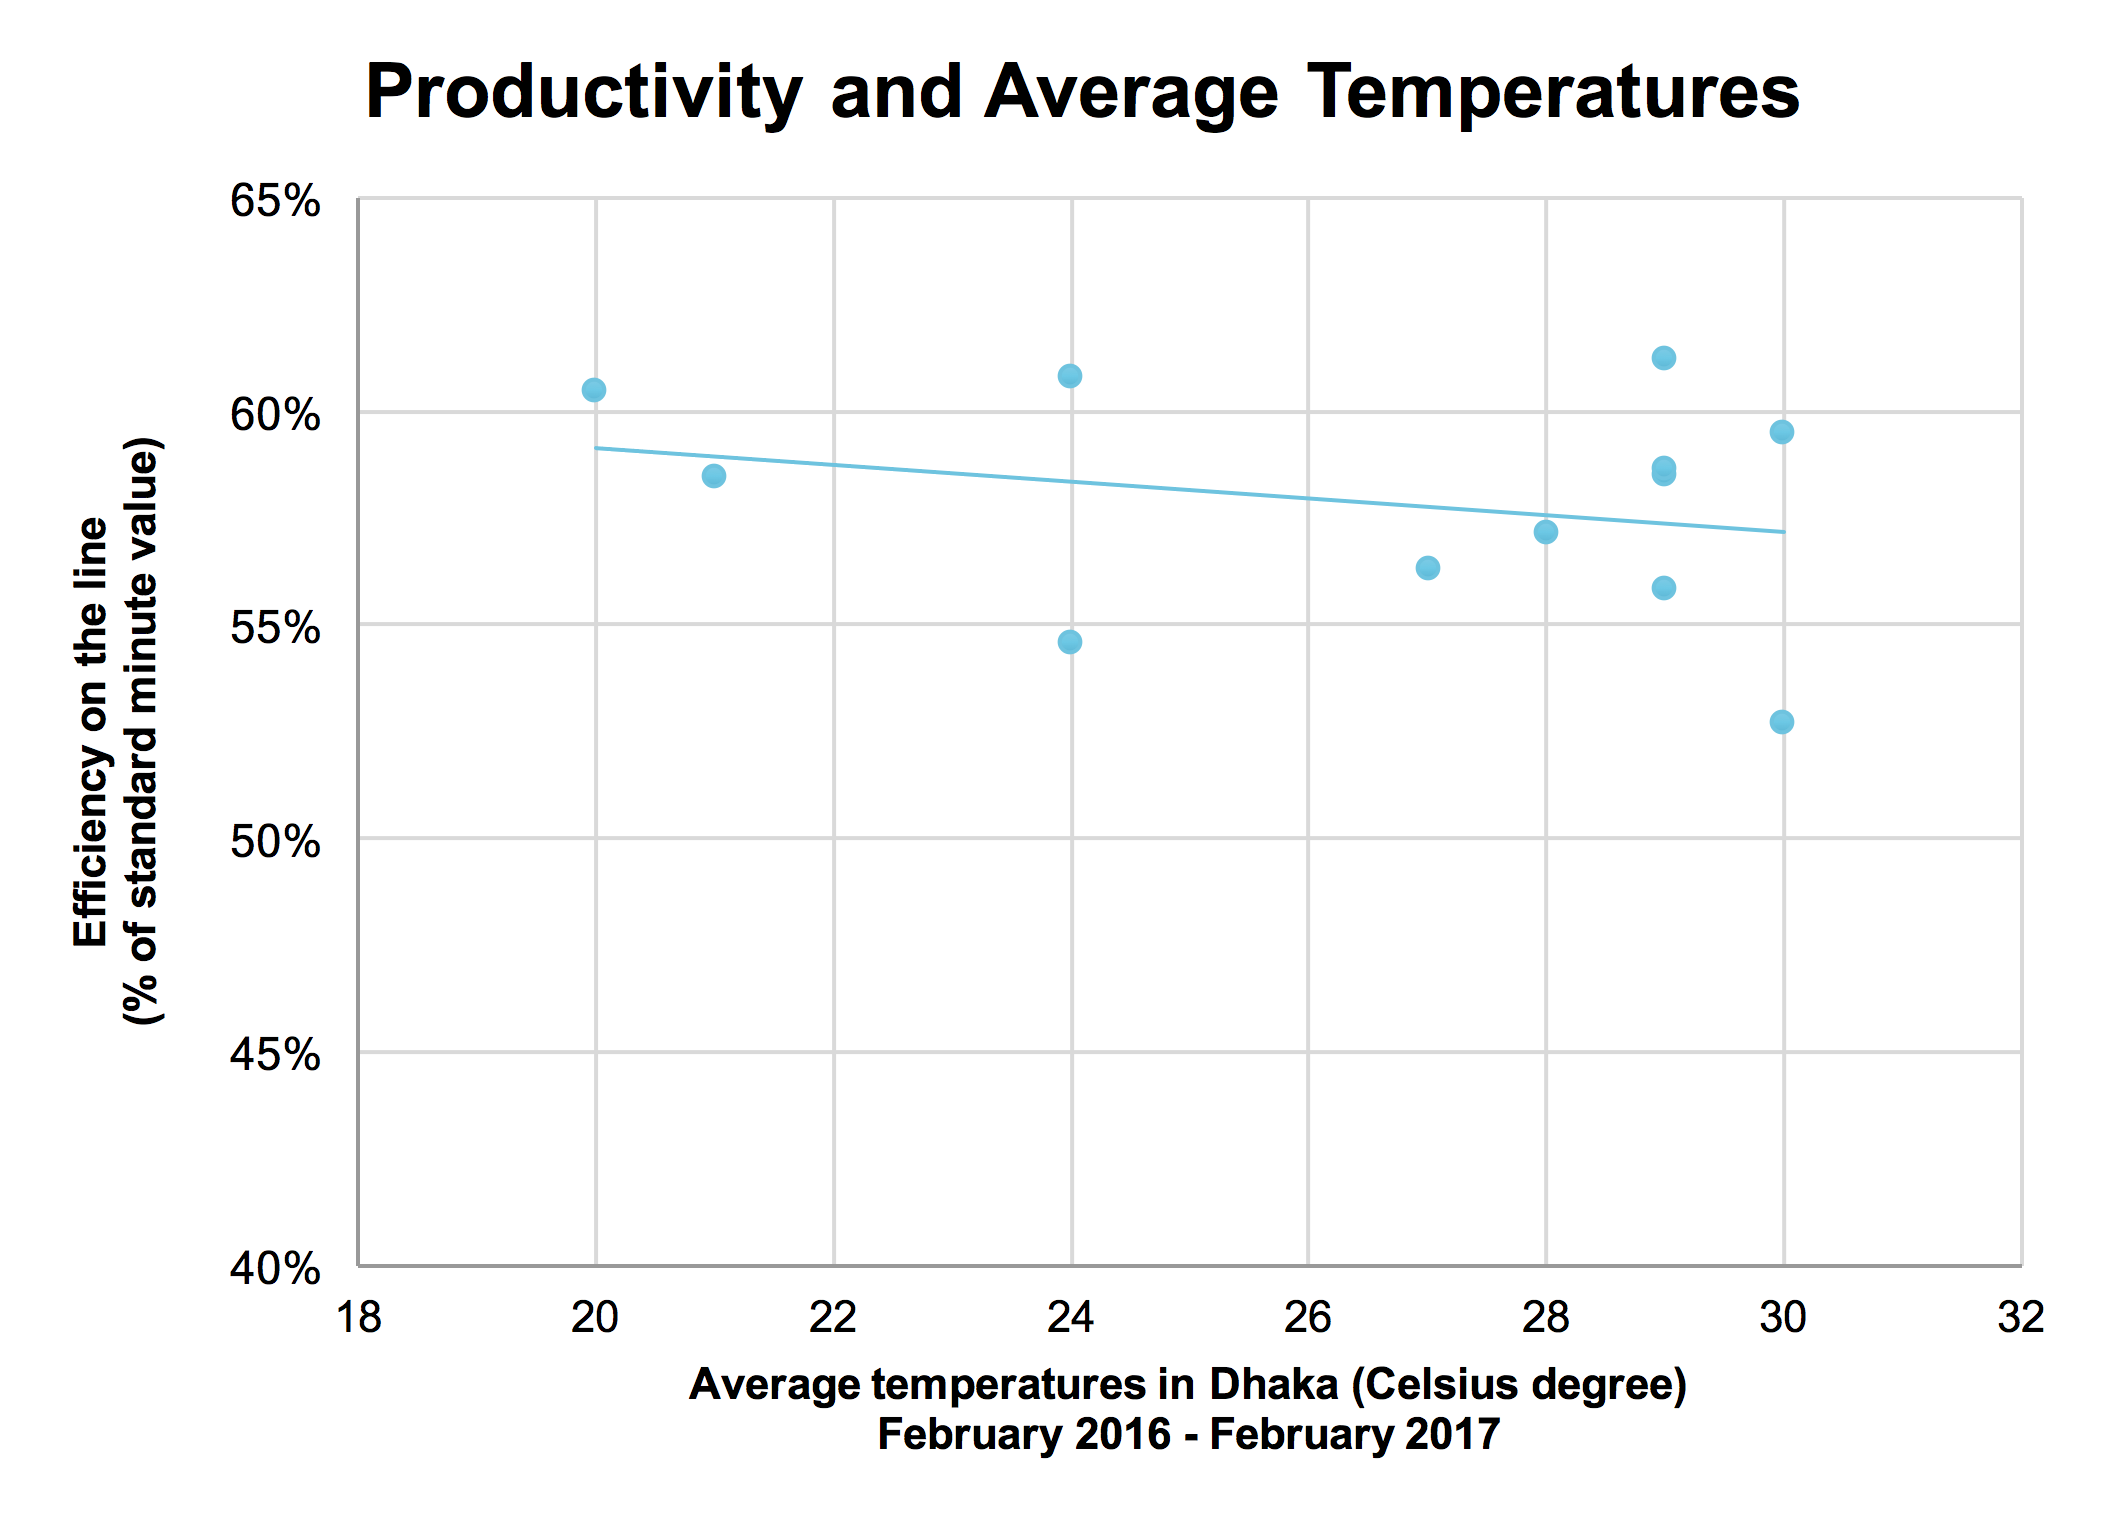 Productivity and Average Temperature